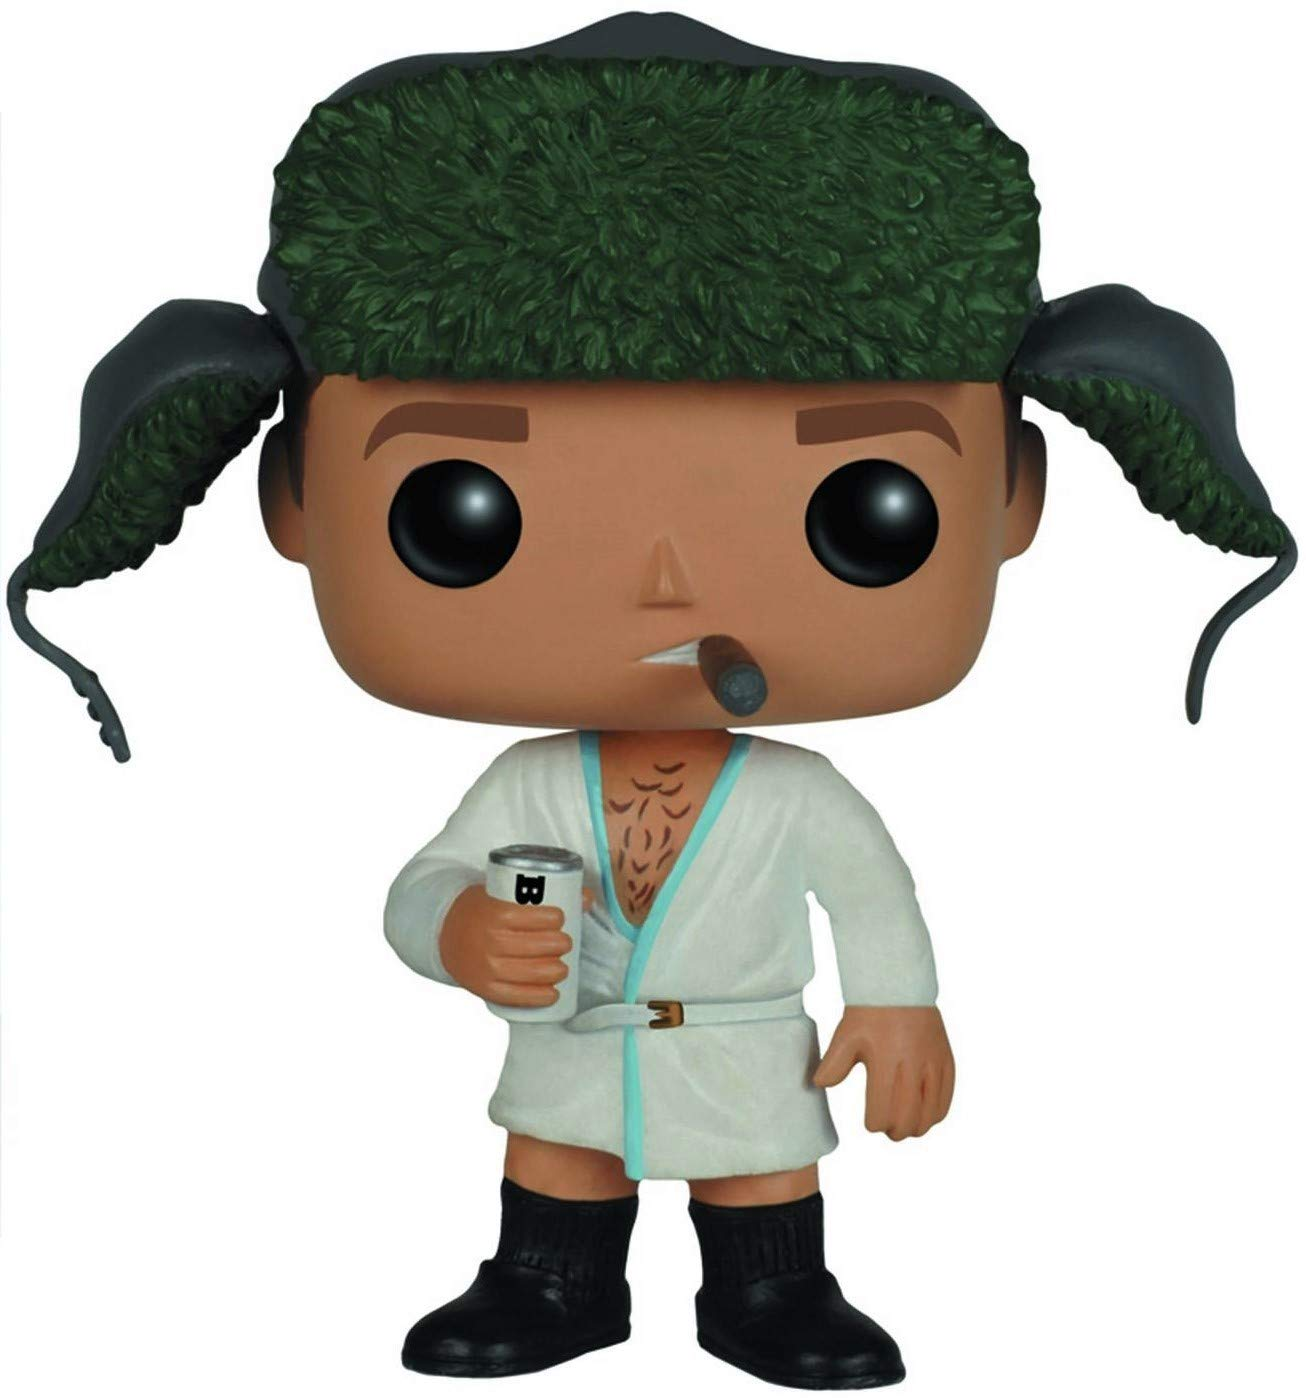 Vinyl Figure Holidays: Christmas Vacation Funko Pop Includes Compatible Pop Box Protector Case Cousin Eddie Pop